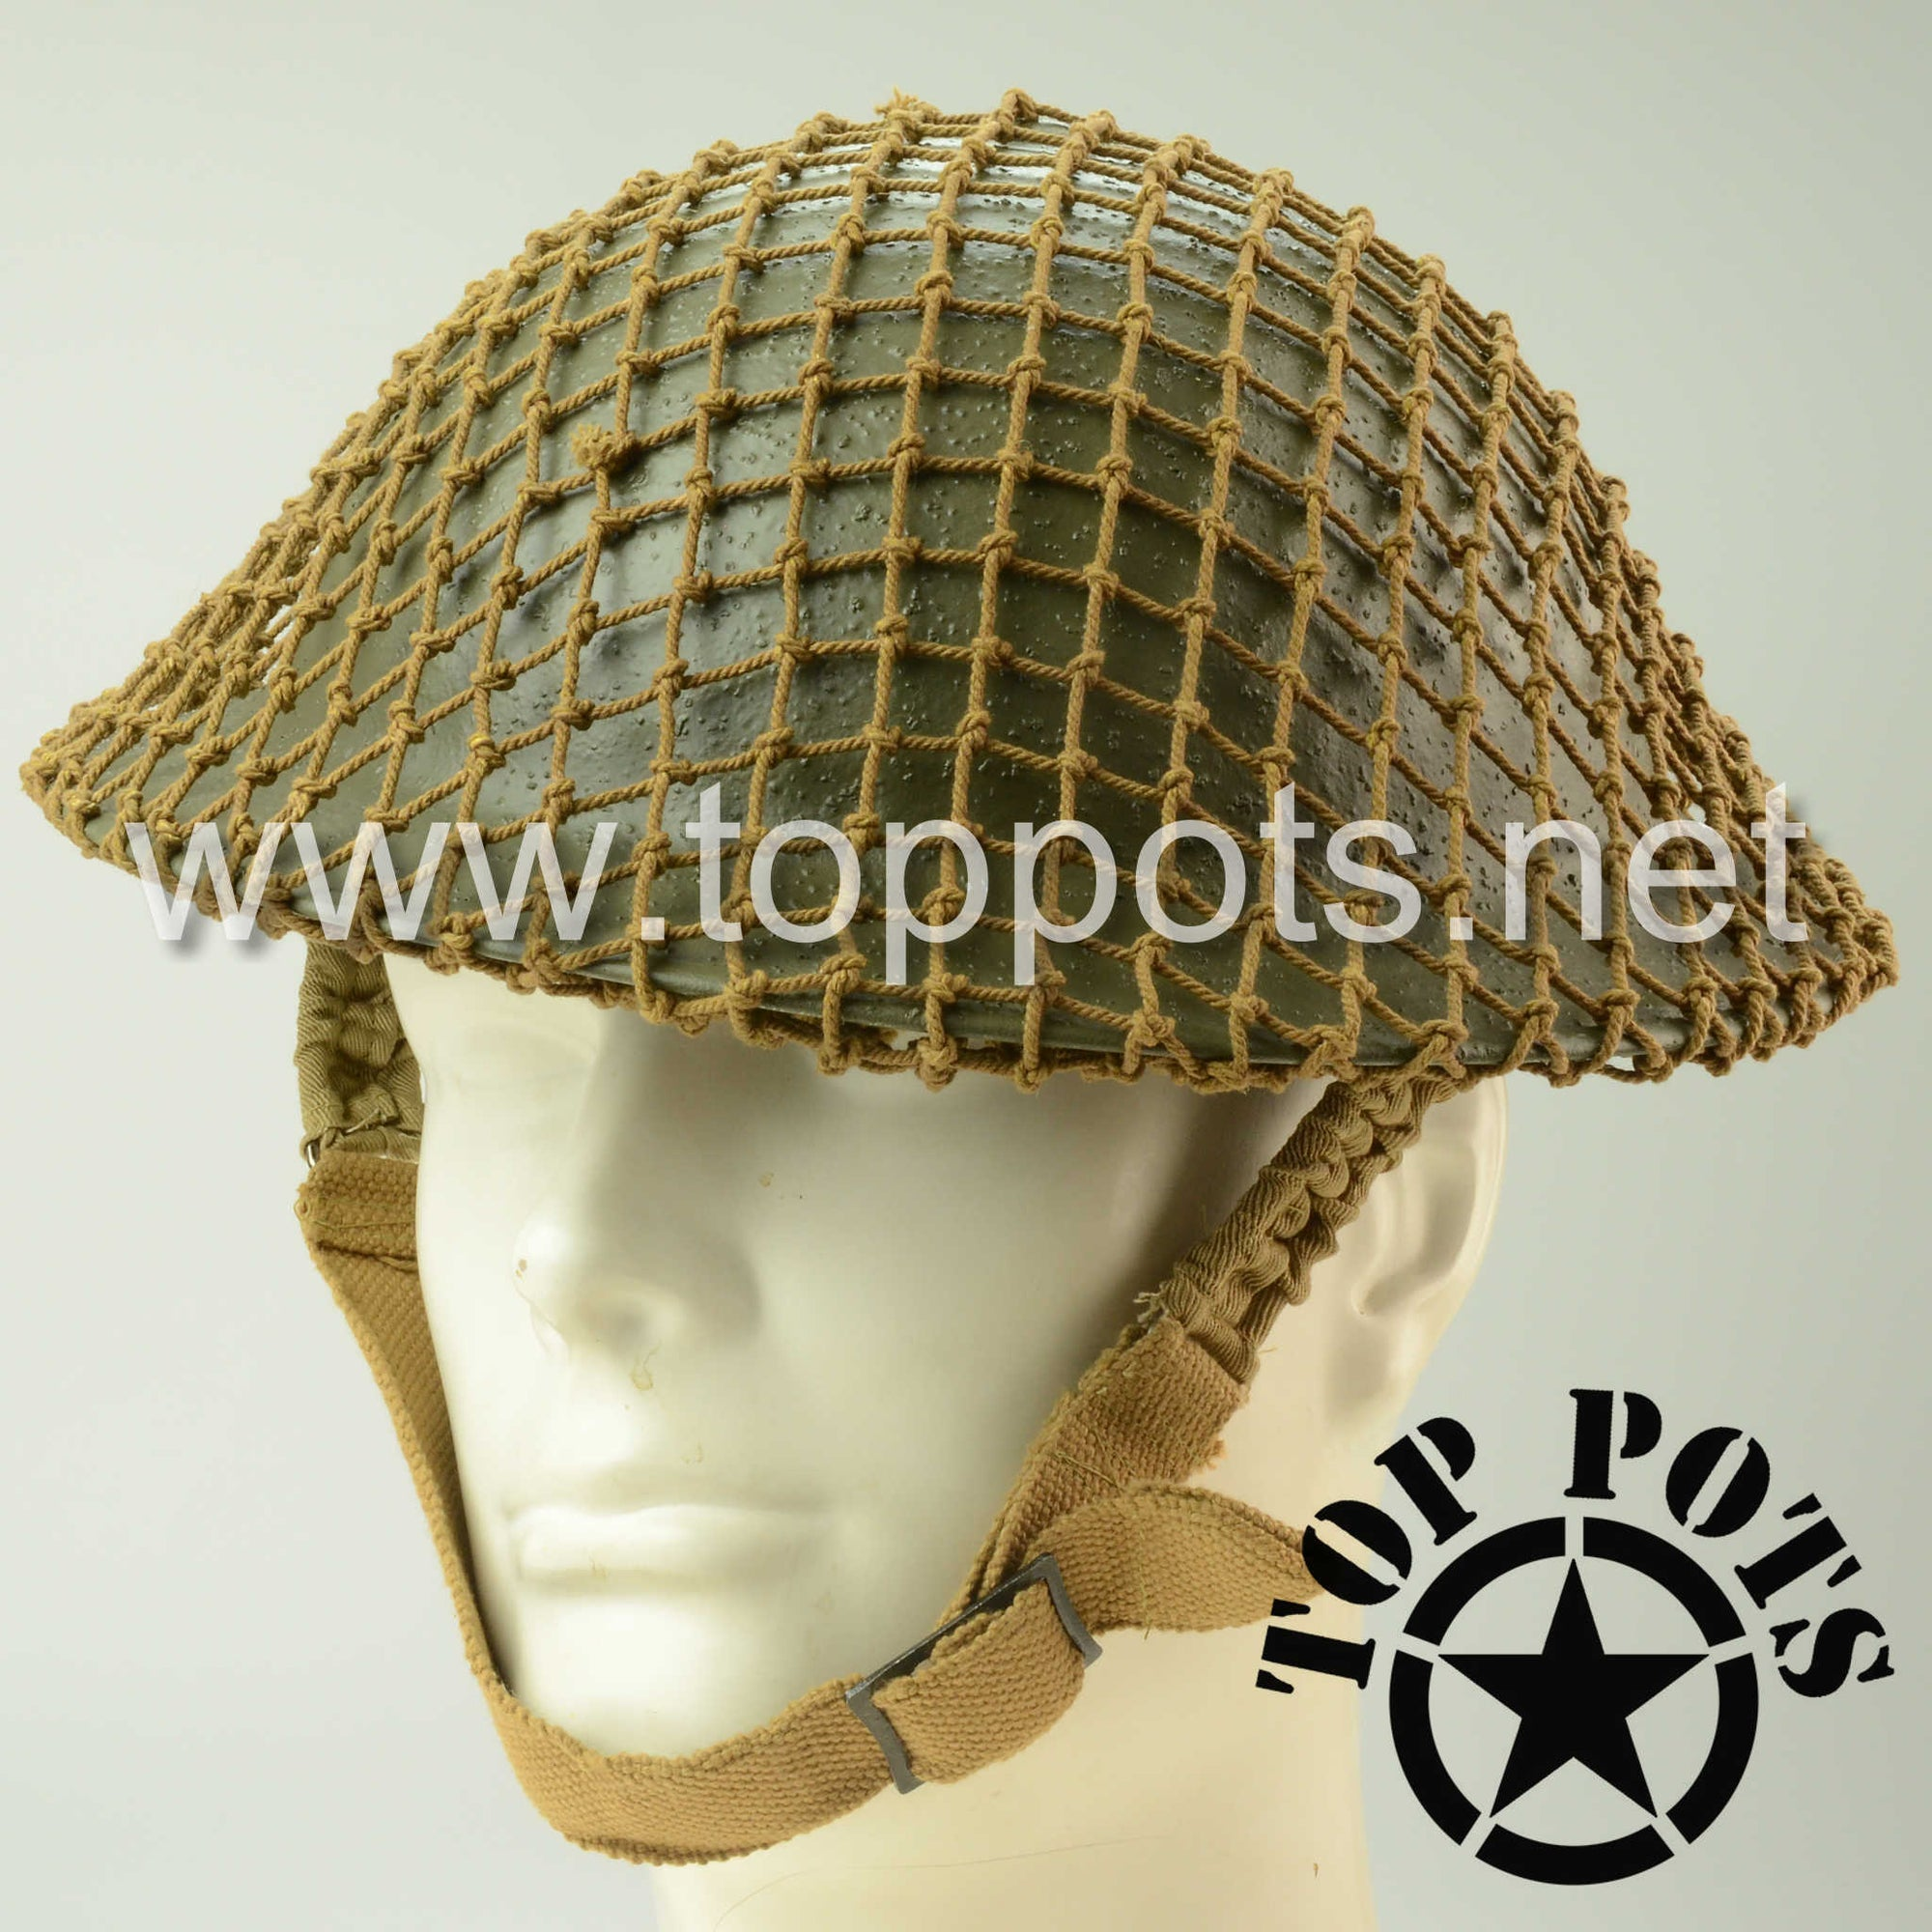 WWII Australian Army Reproduction MKII MK2 Enlisted Brodie Helmet with Reproduction Helmet Net – Field Textured Finish